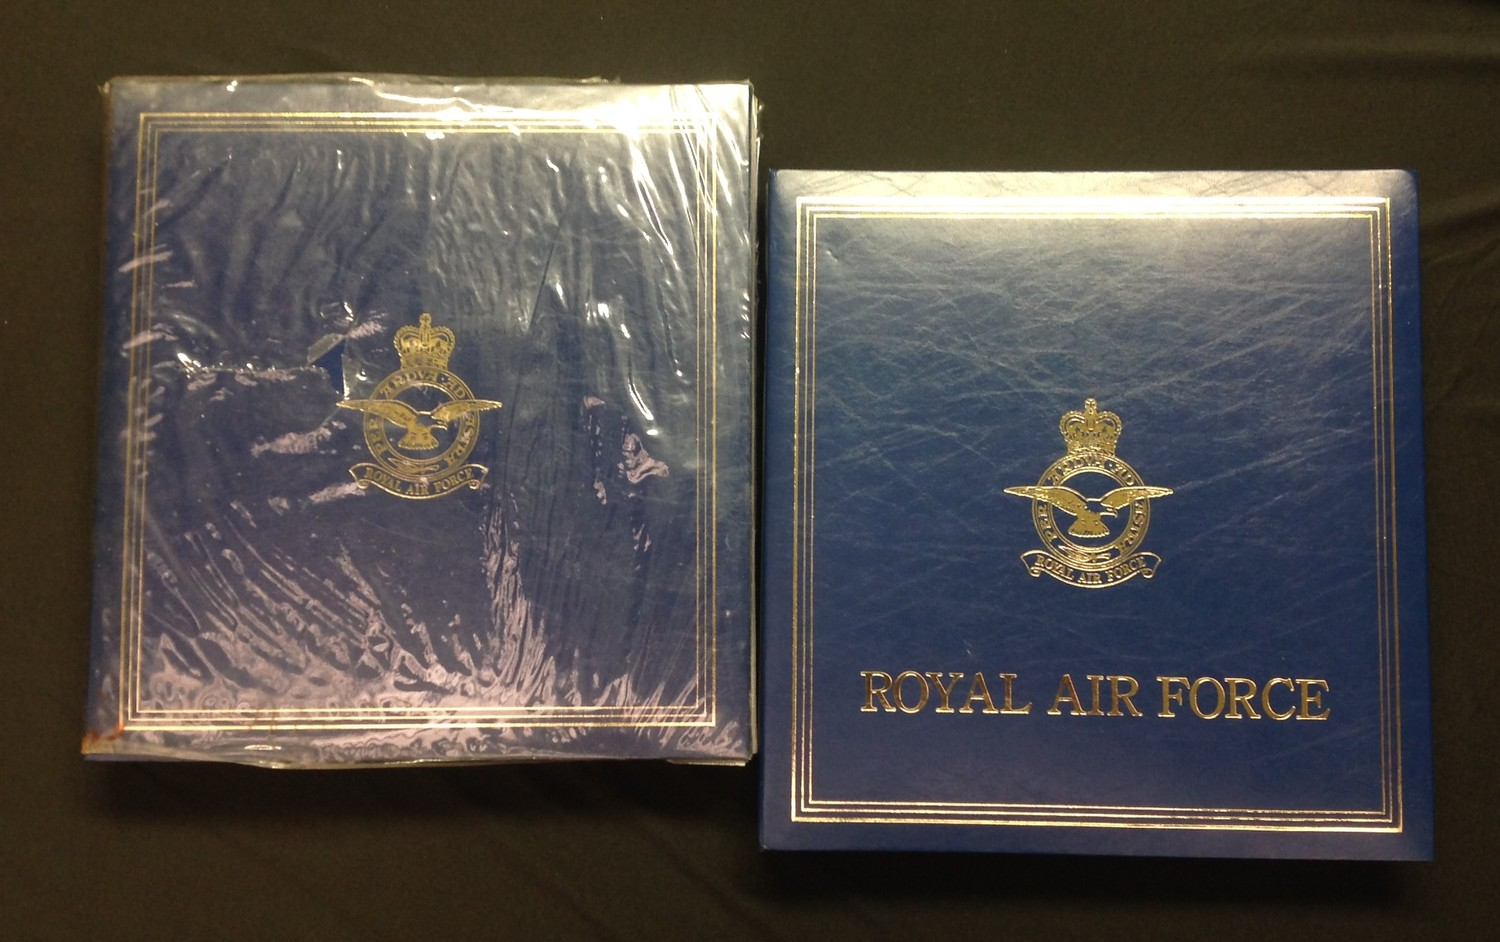 Royal Air Force Fighter Pilot and Bomber Pilot Profile Collection. A limited edition of only 2000